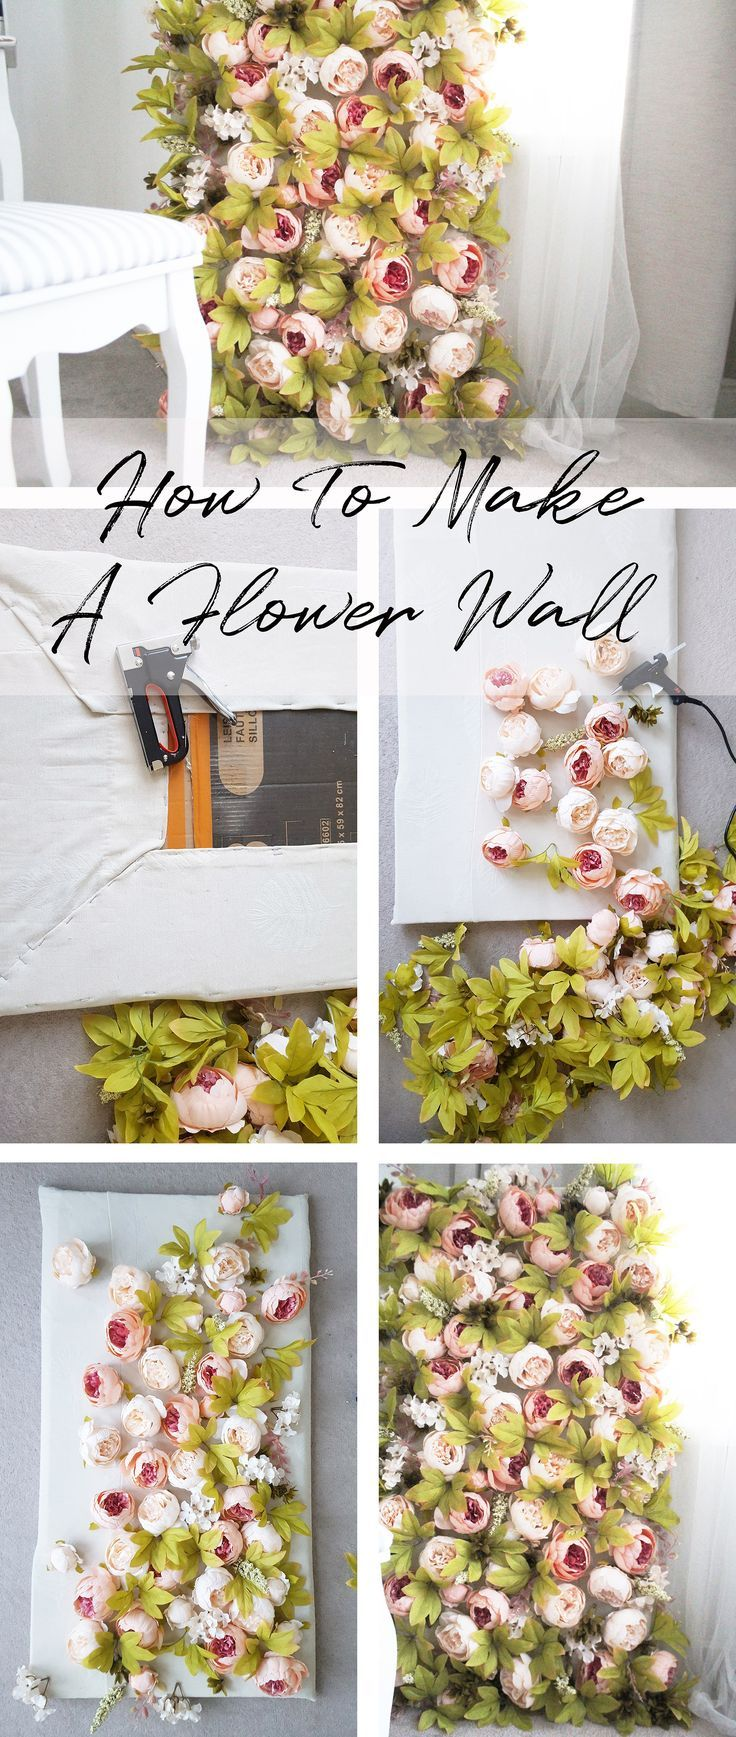 How to make a flowerwall diy diy howtos diyflowerwall flowerwall